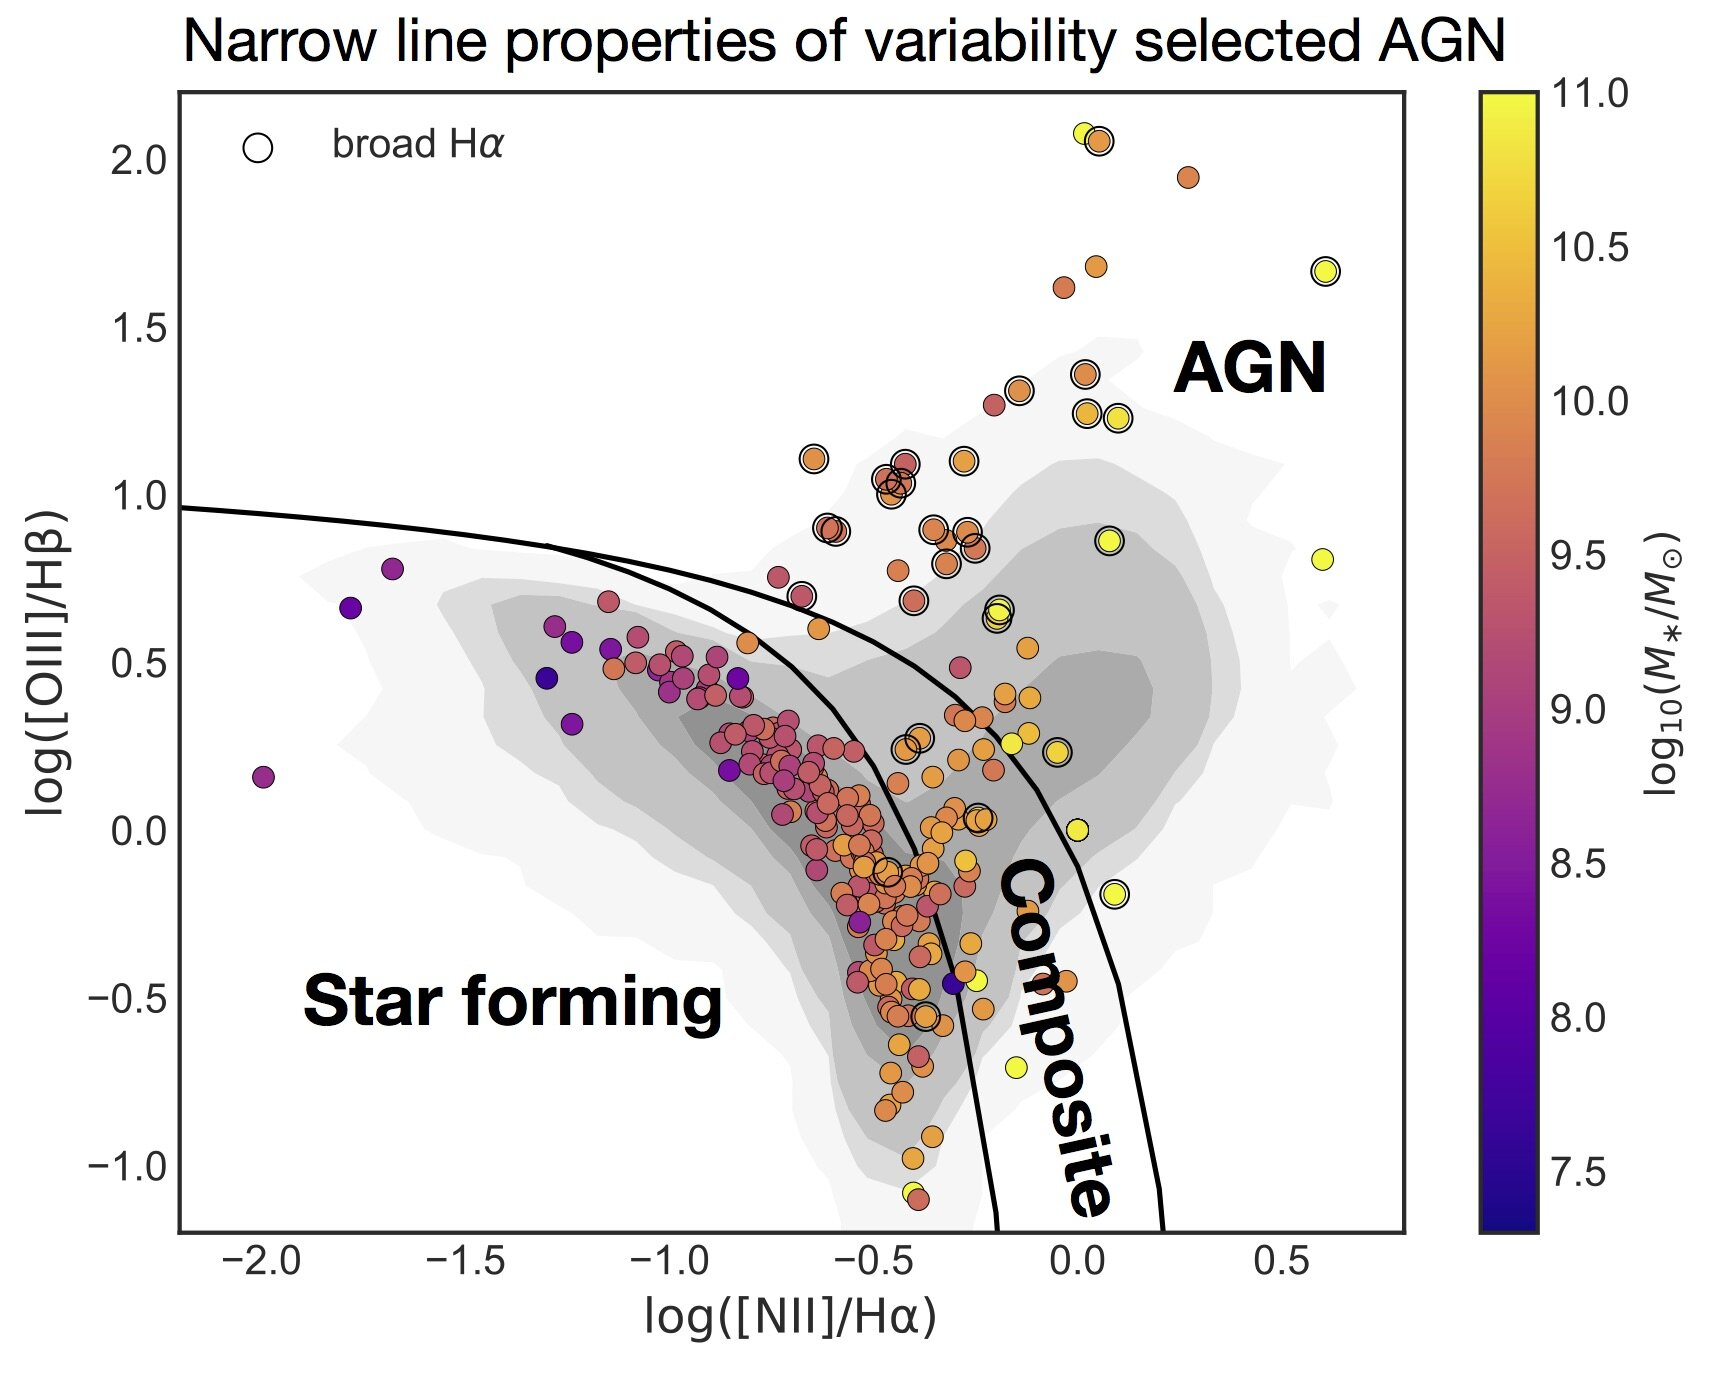 BPT diagram showing the positions of variability-selected AGNs. Points are colored by stellar mass, and objects with broad H-alpha emission are circled. The lowest-mass objects in the sample have narrow emission line ratios dominated by star formation.